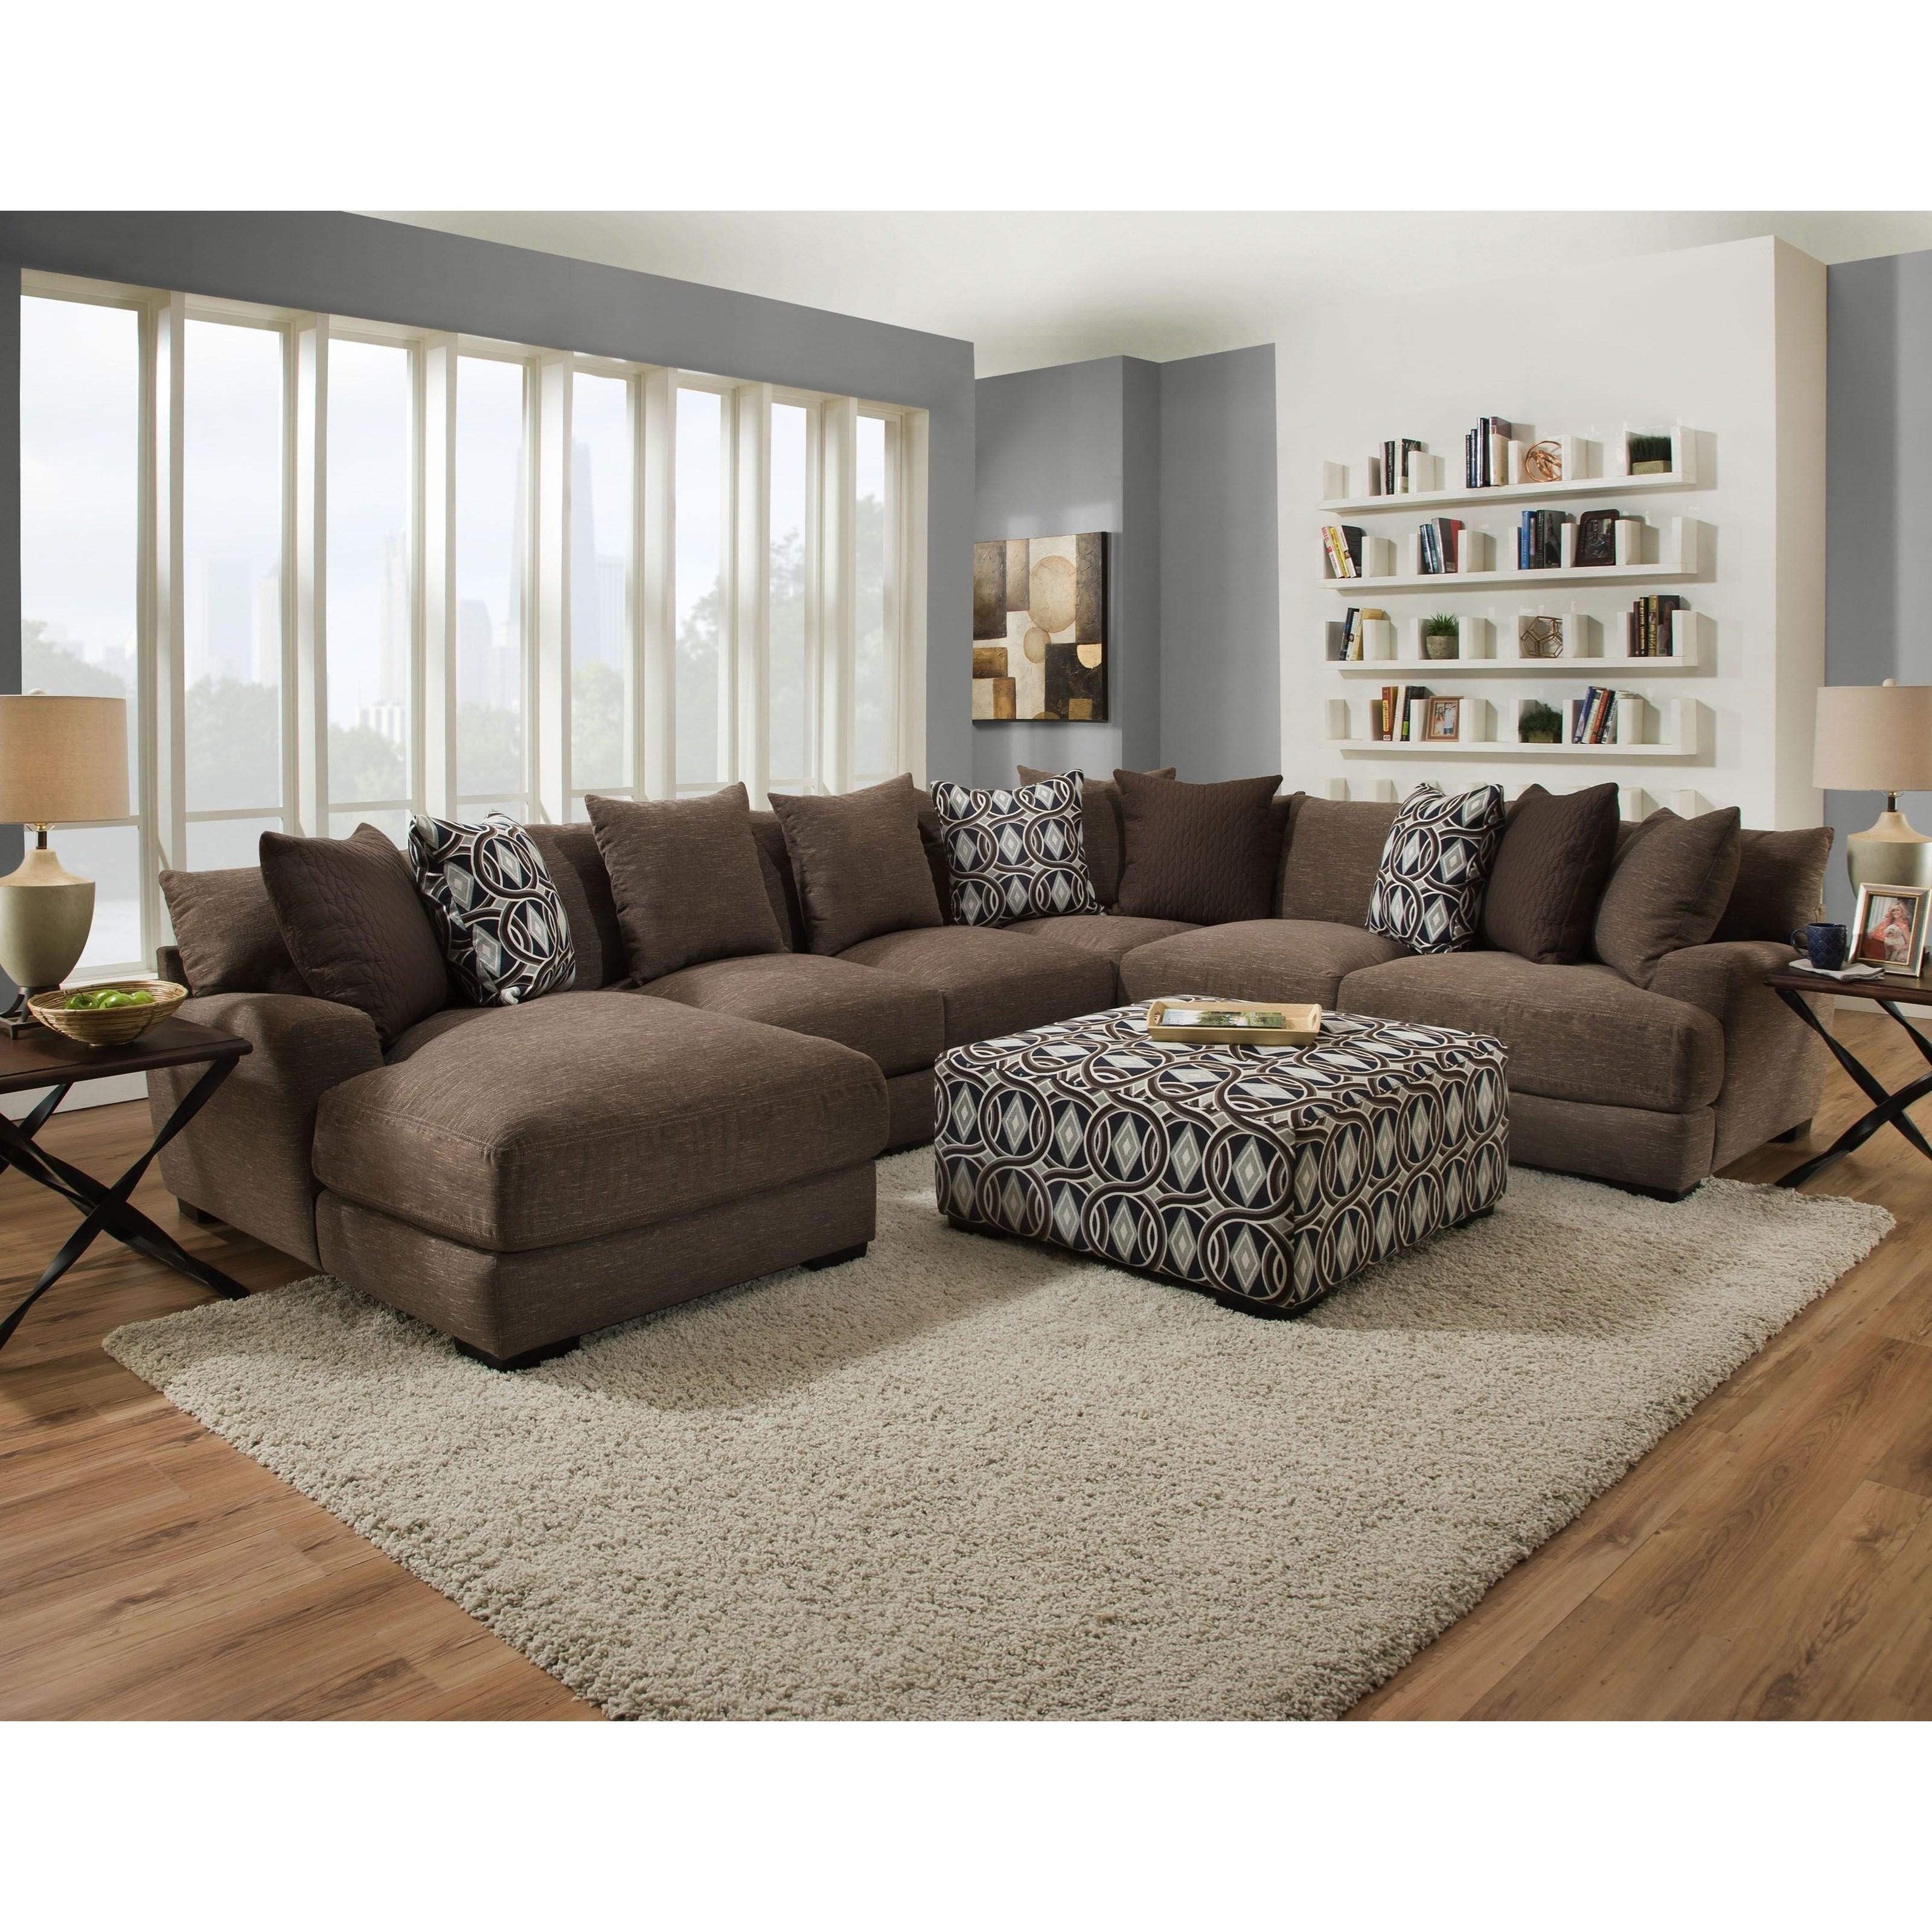 Cadet Five Seat Sectional with Left Facing Chaise by Franklin at Wilcox Furniture